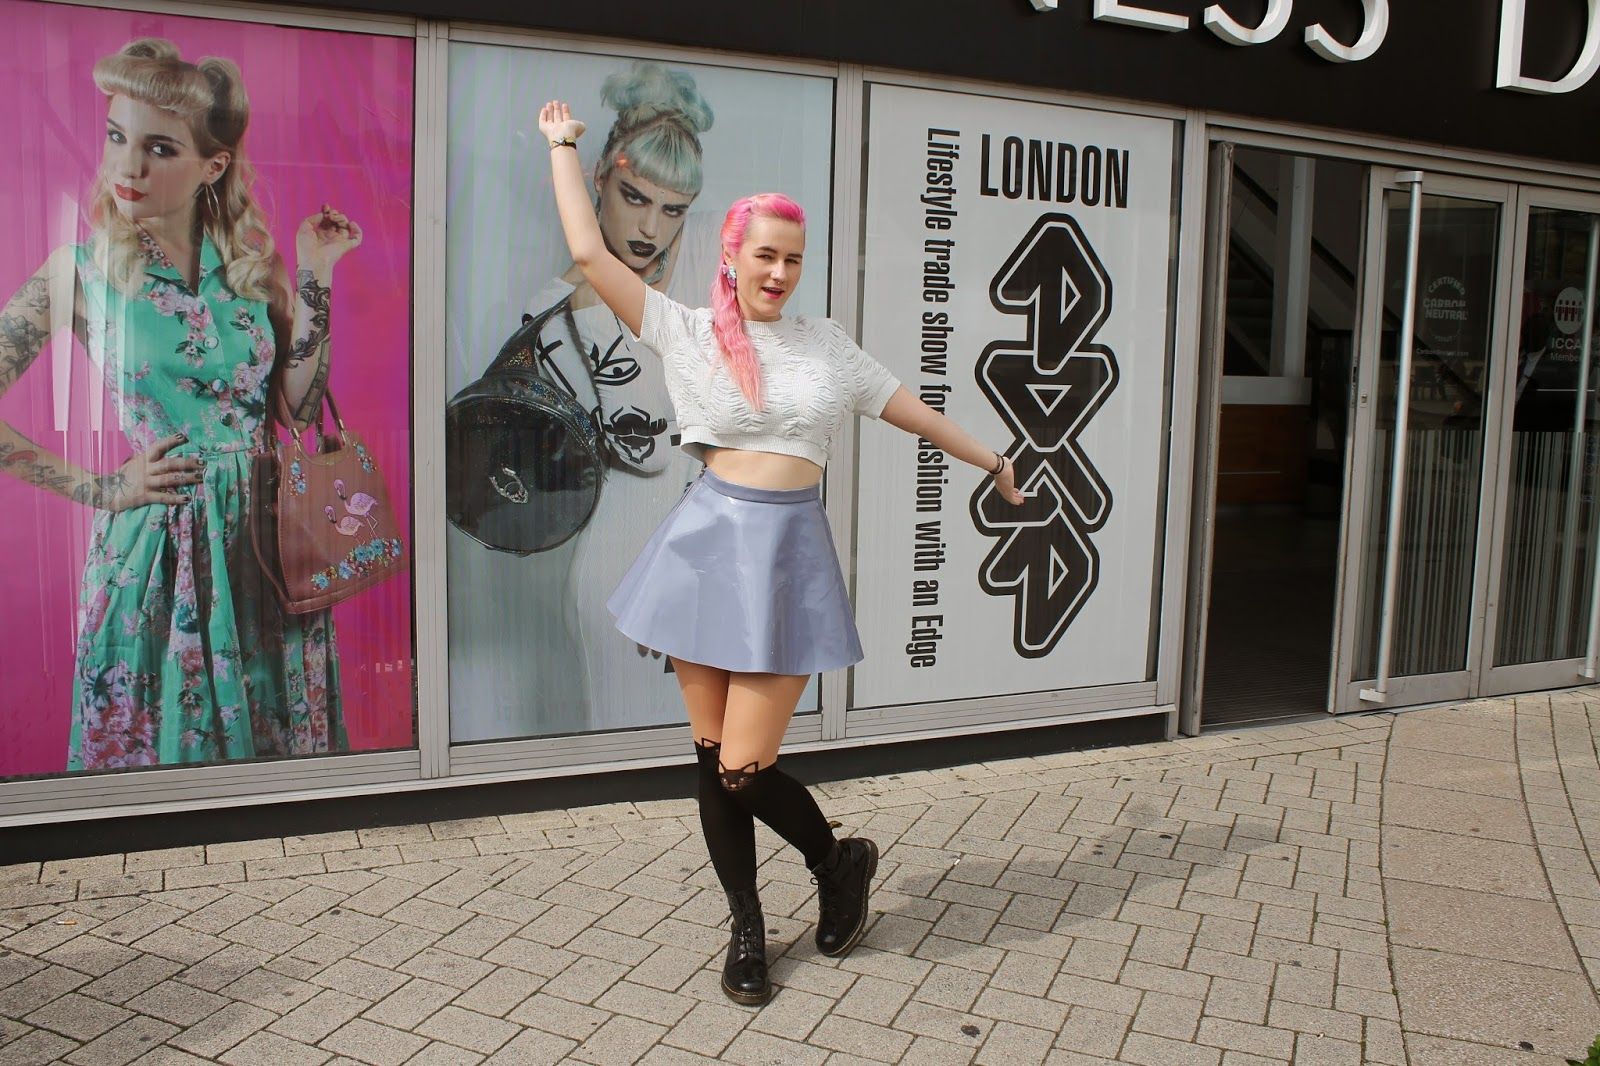 LONDON EDGE 14: MY BEST OF FROM MY LITTLE PONY TO PENTAGRAMS